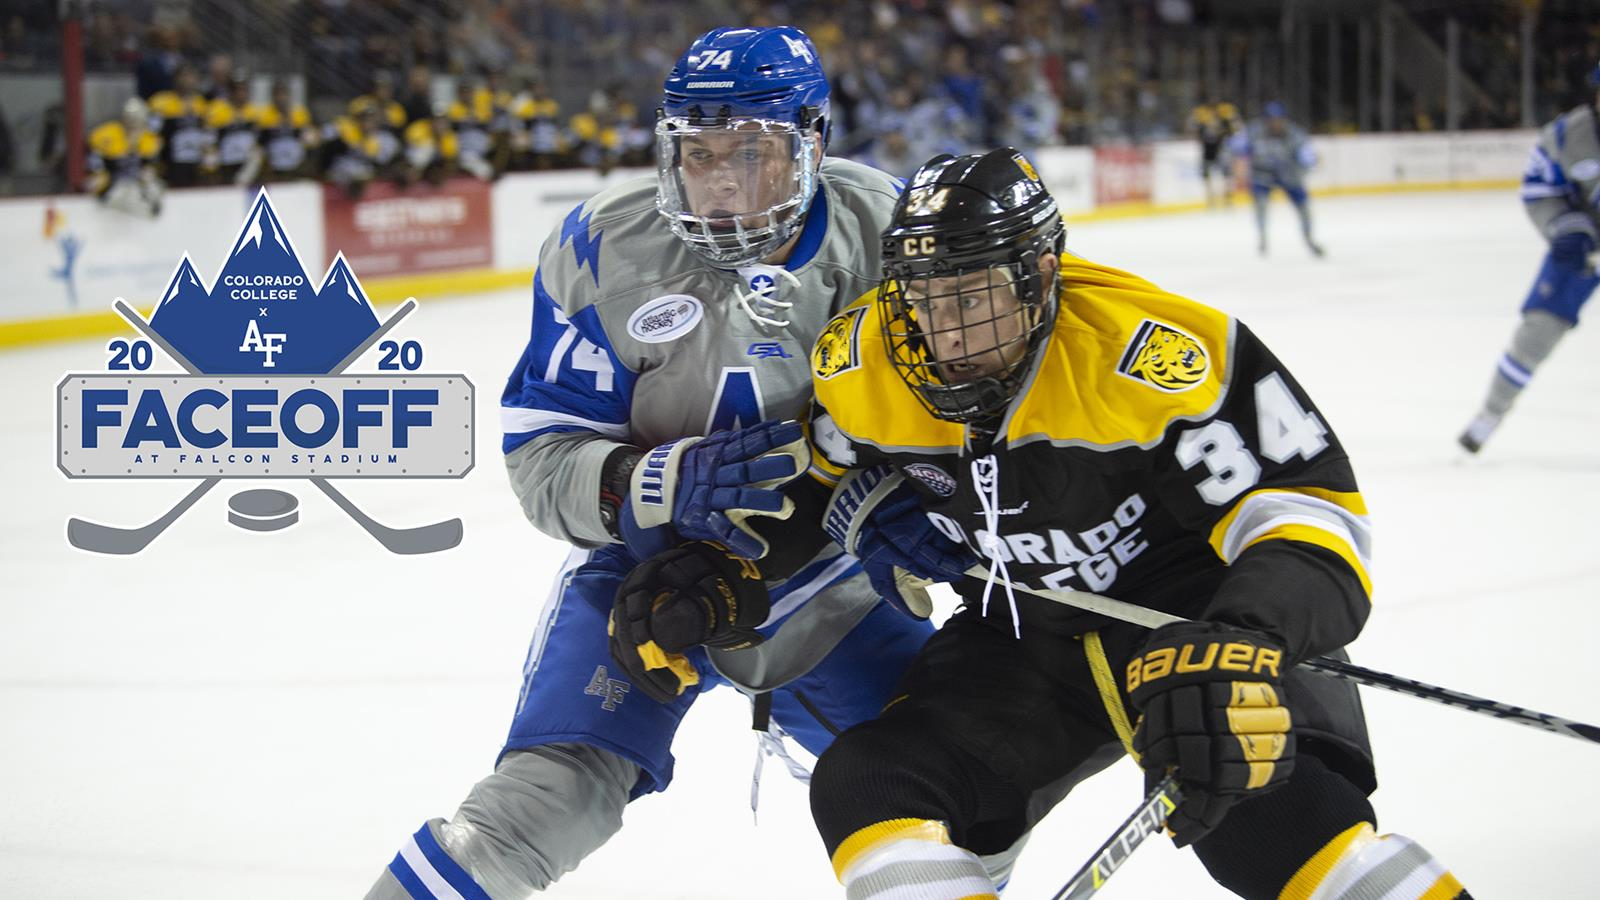 CC and Air Force to Play in Faceoff at Falcon Stadium - Colorado College  Athletics